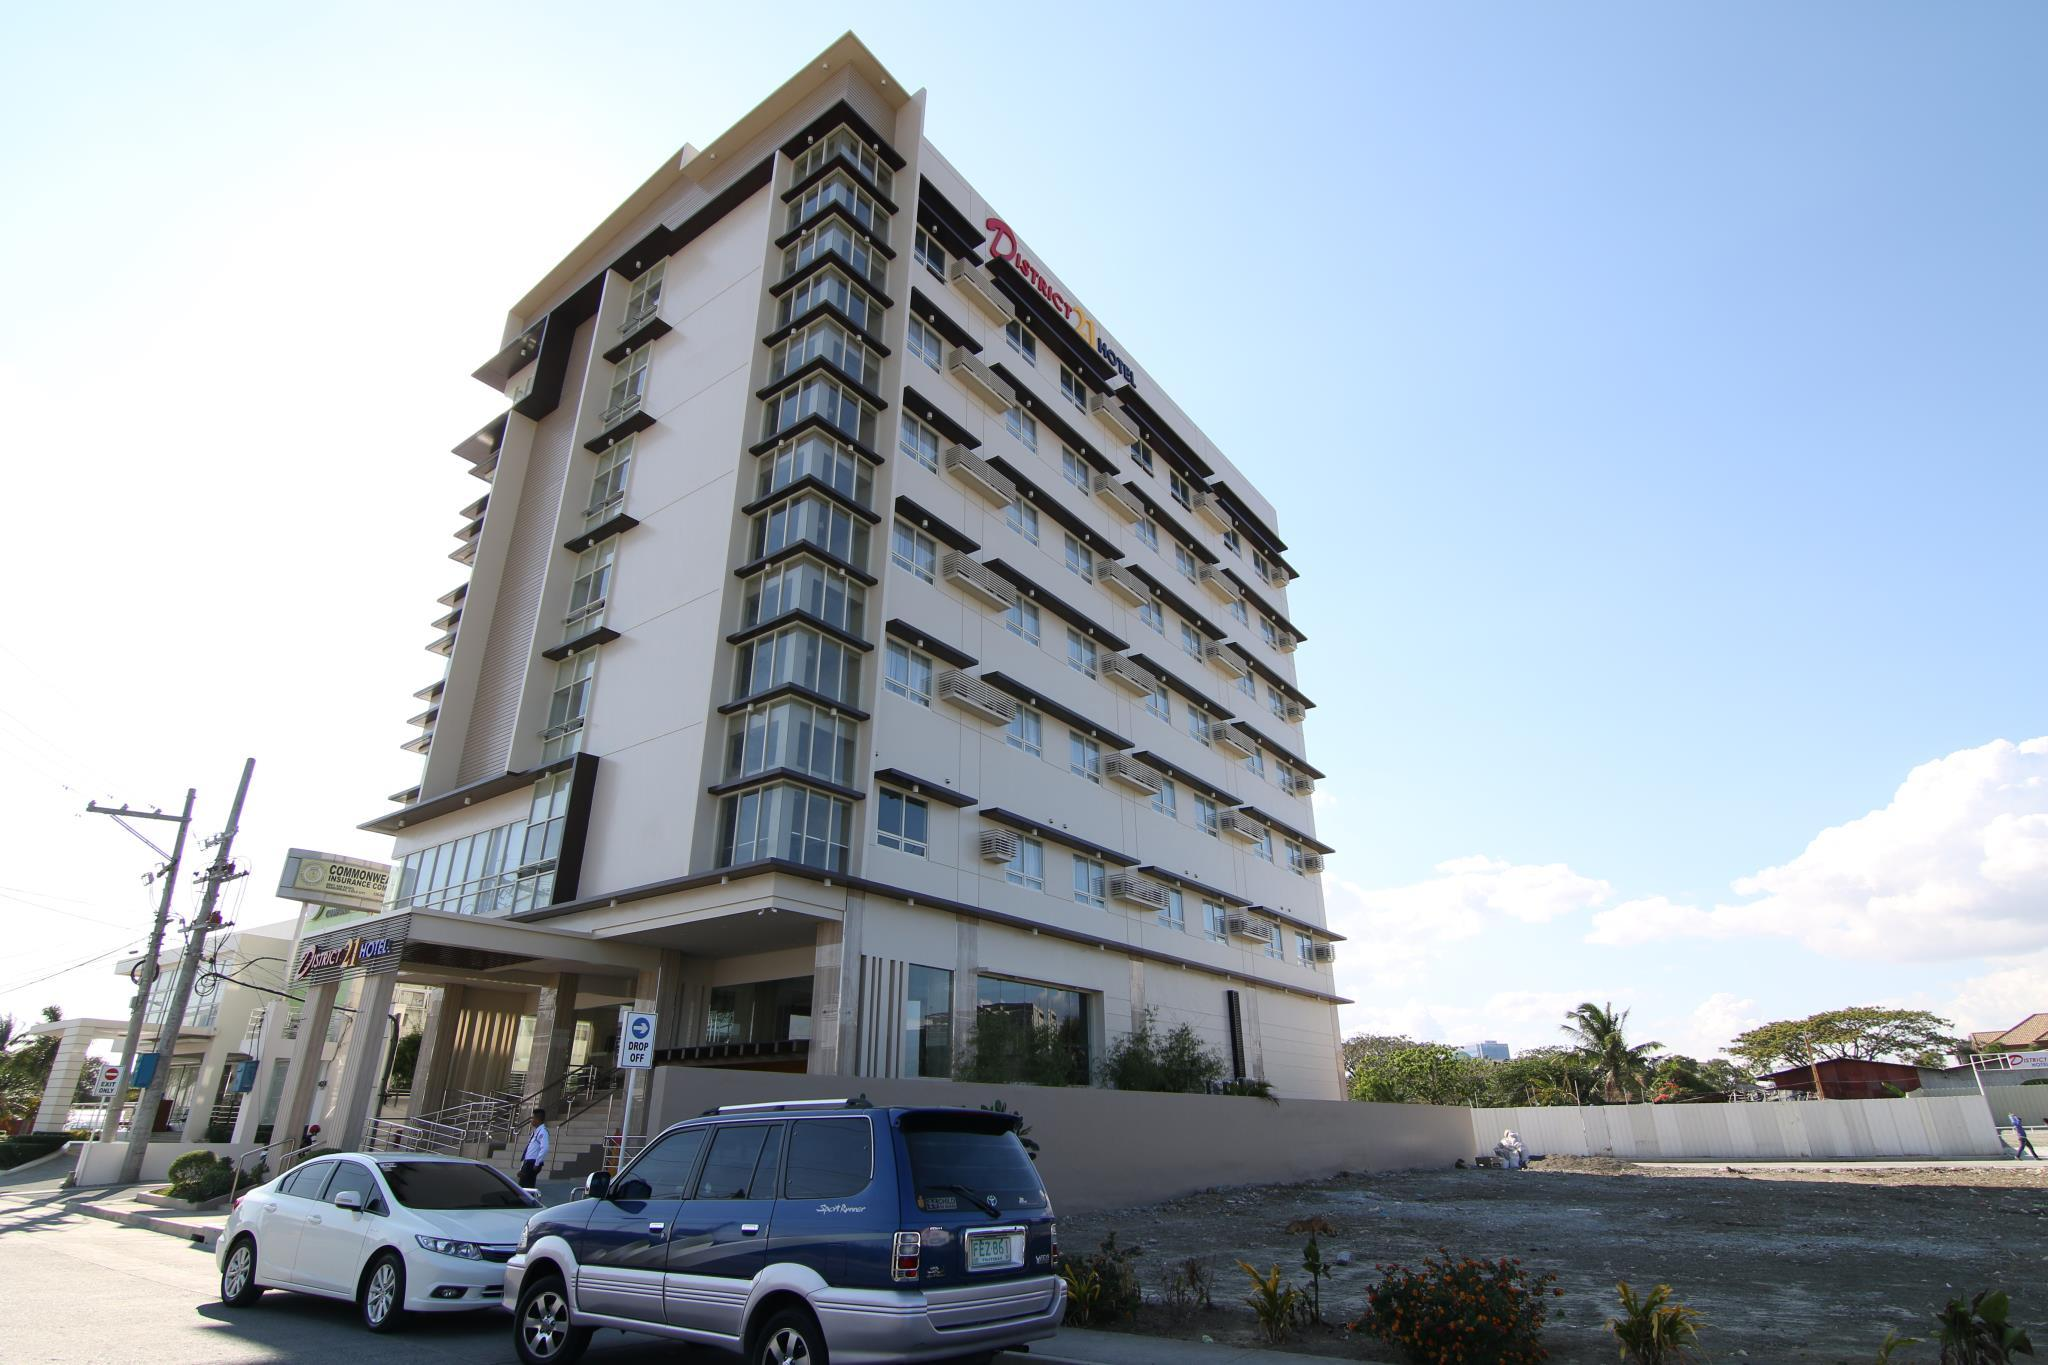 District 21 Hotel